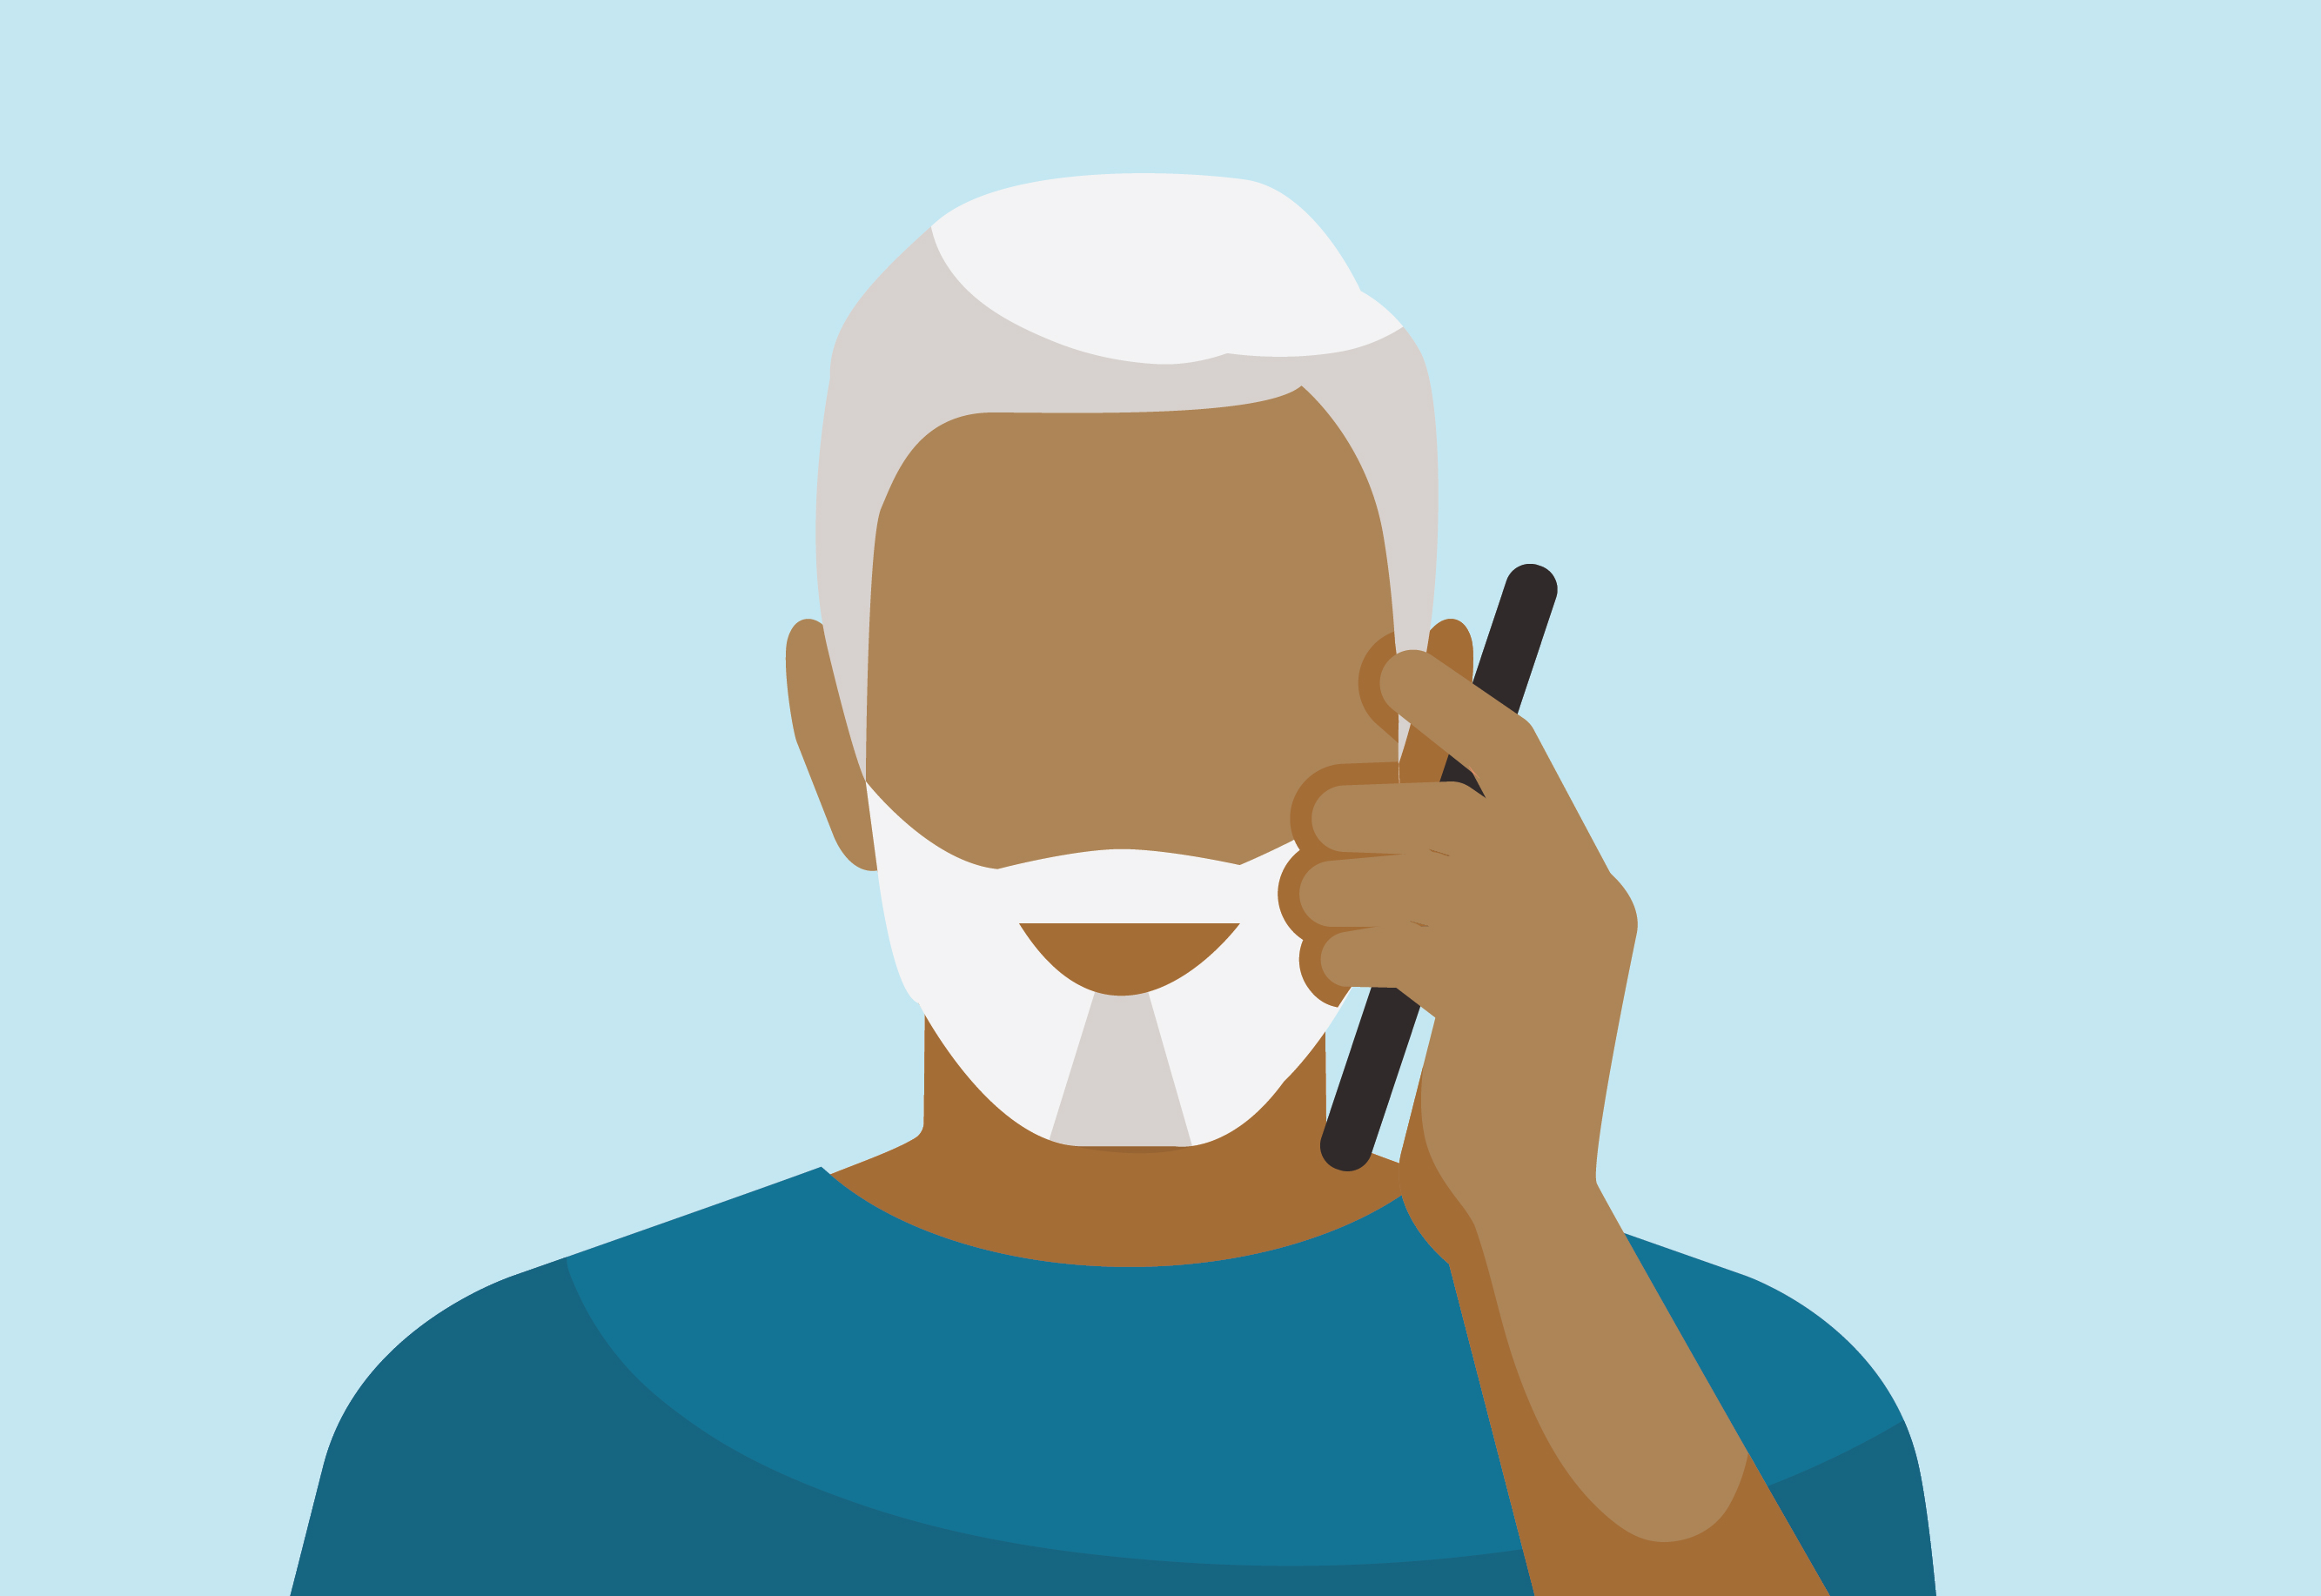 Icon showing man on the phone